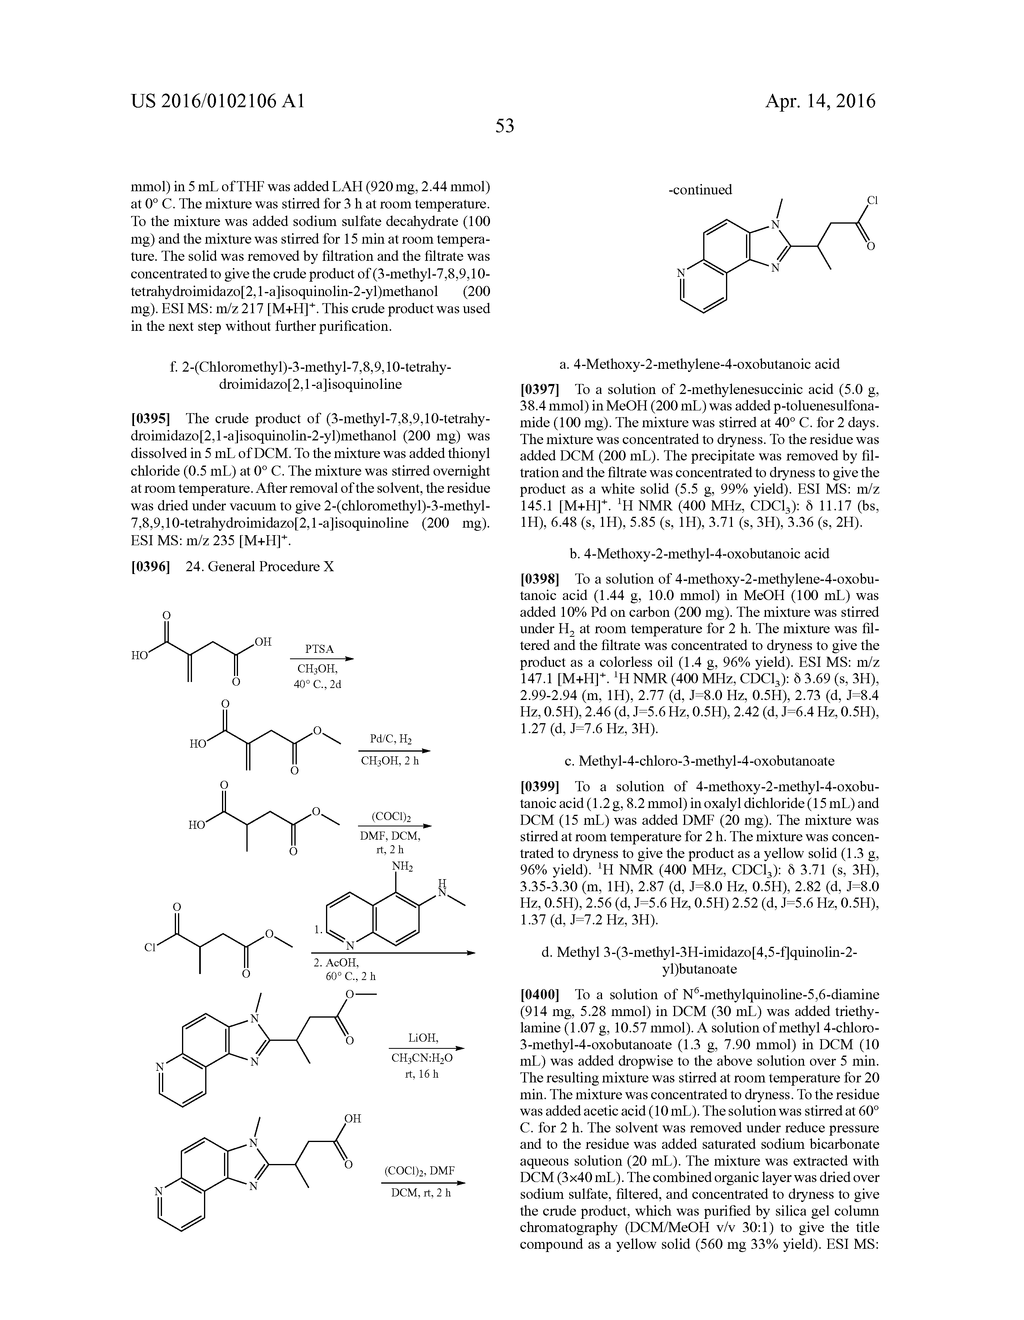 HETEROARYL COMPOUNDS AND METHODS OF USE THEREOF - diagram, schematic, and image 54